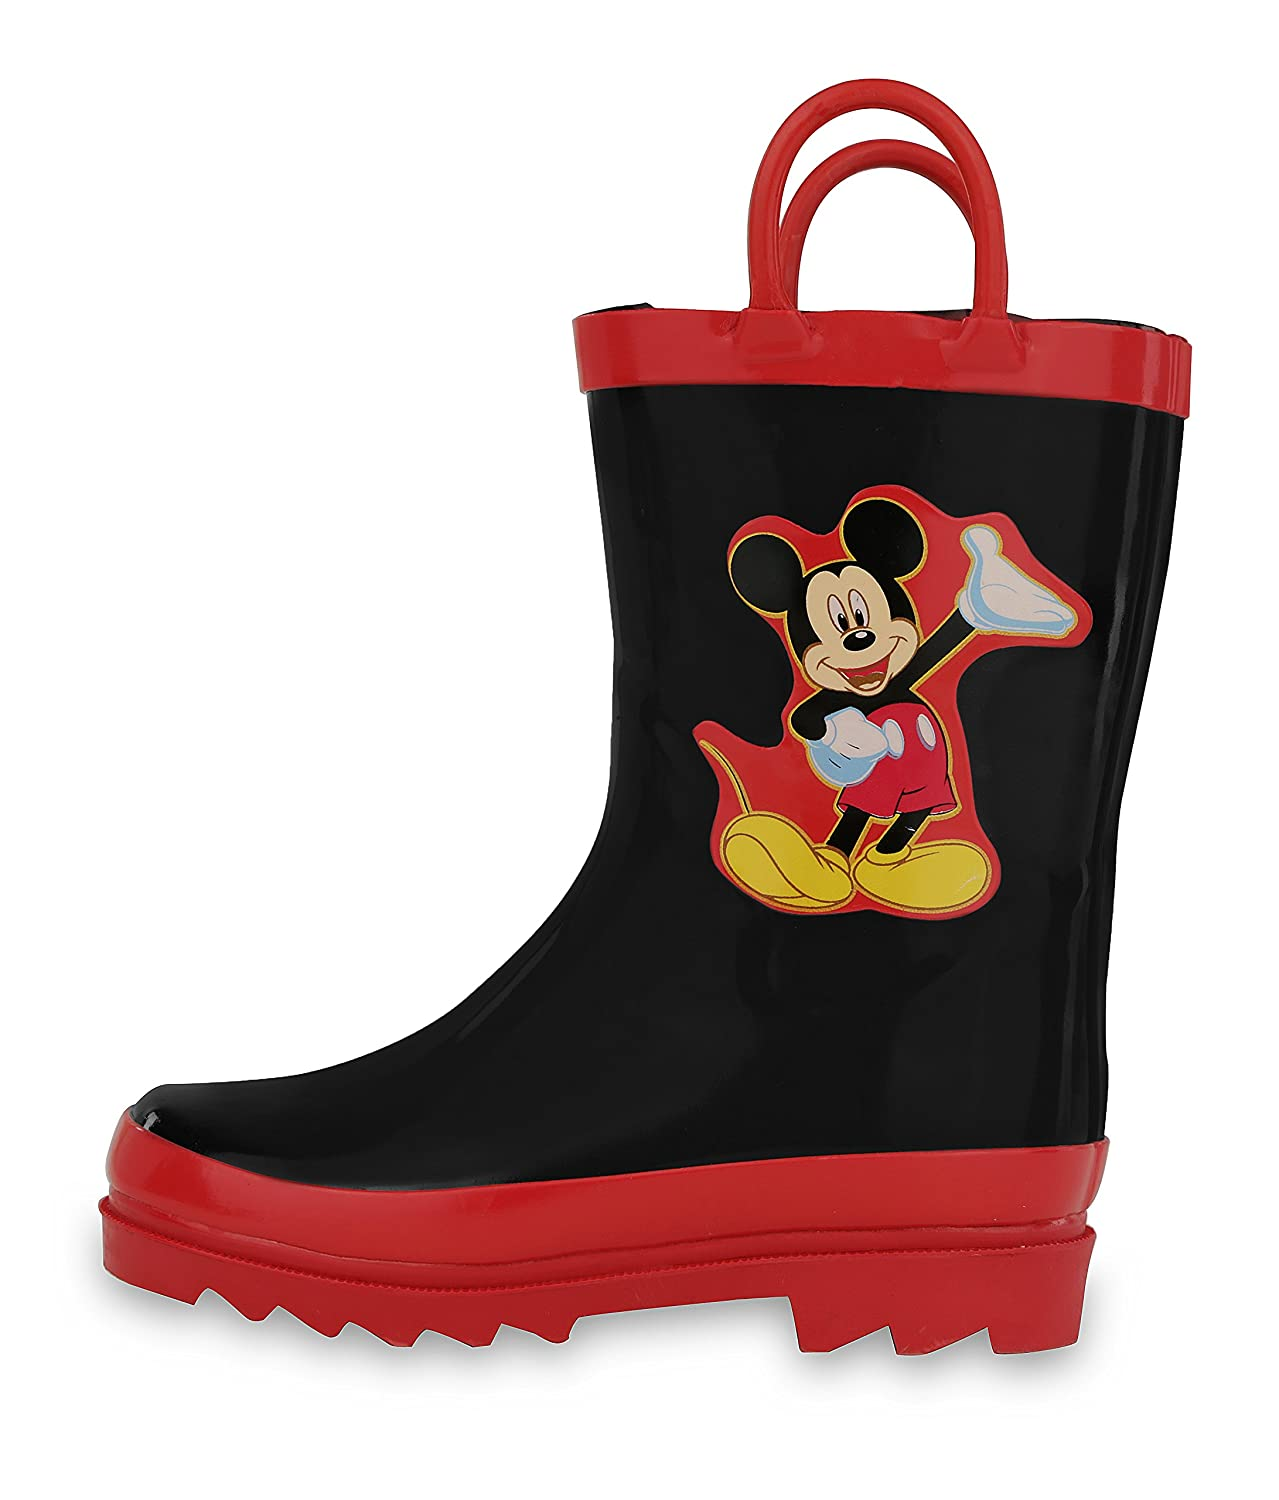 Disney Mickey Mouse Toddler Little Image 2